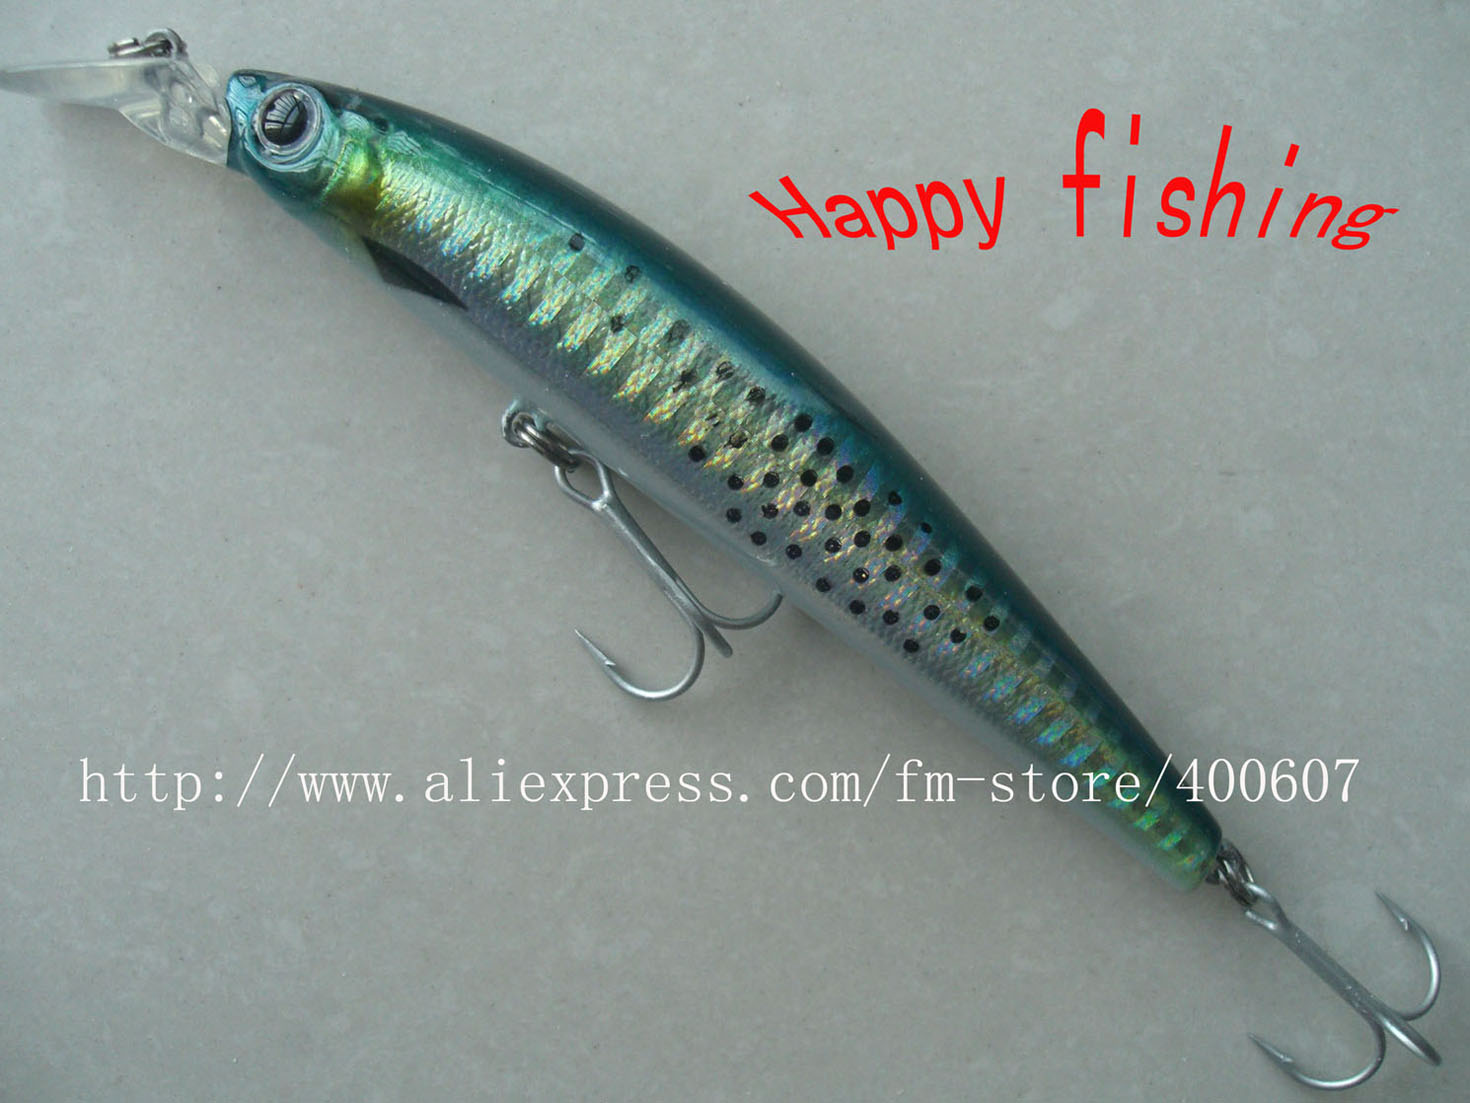 Japanese style bassterminator minnow fishing lure for Japanese fishing lures